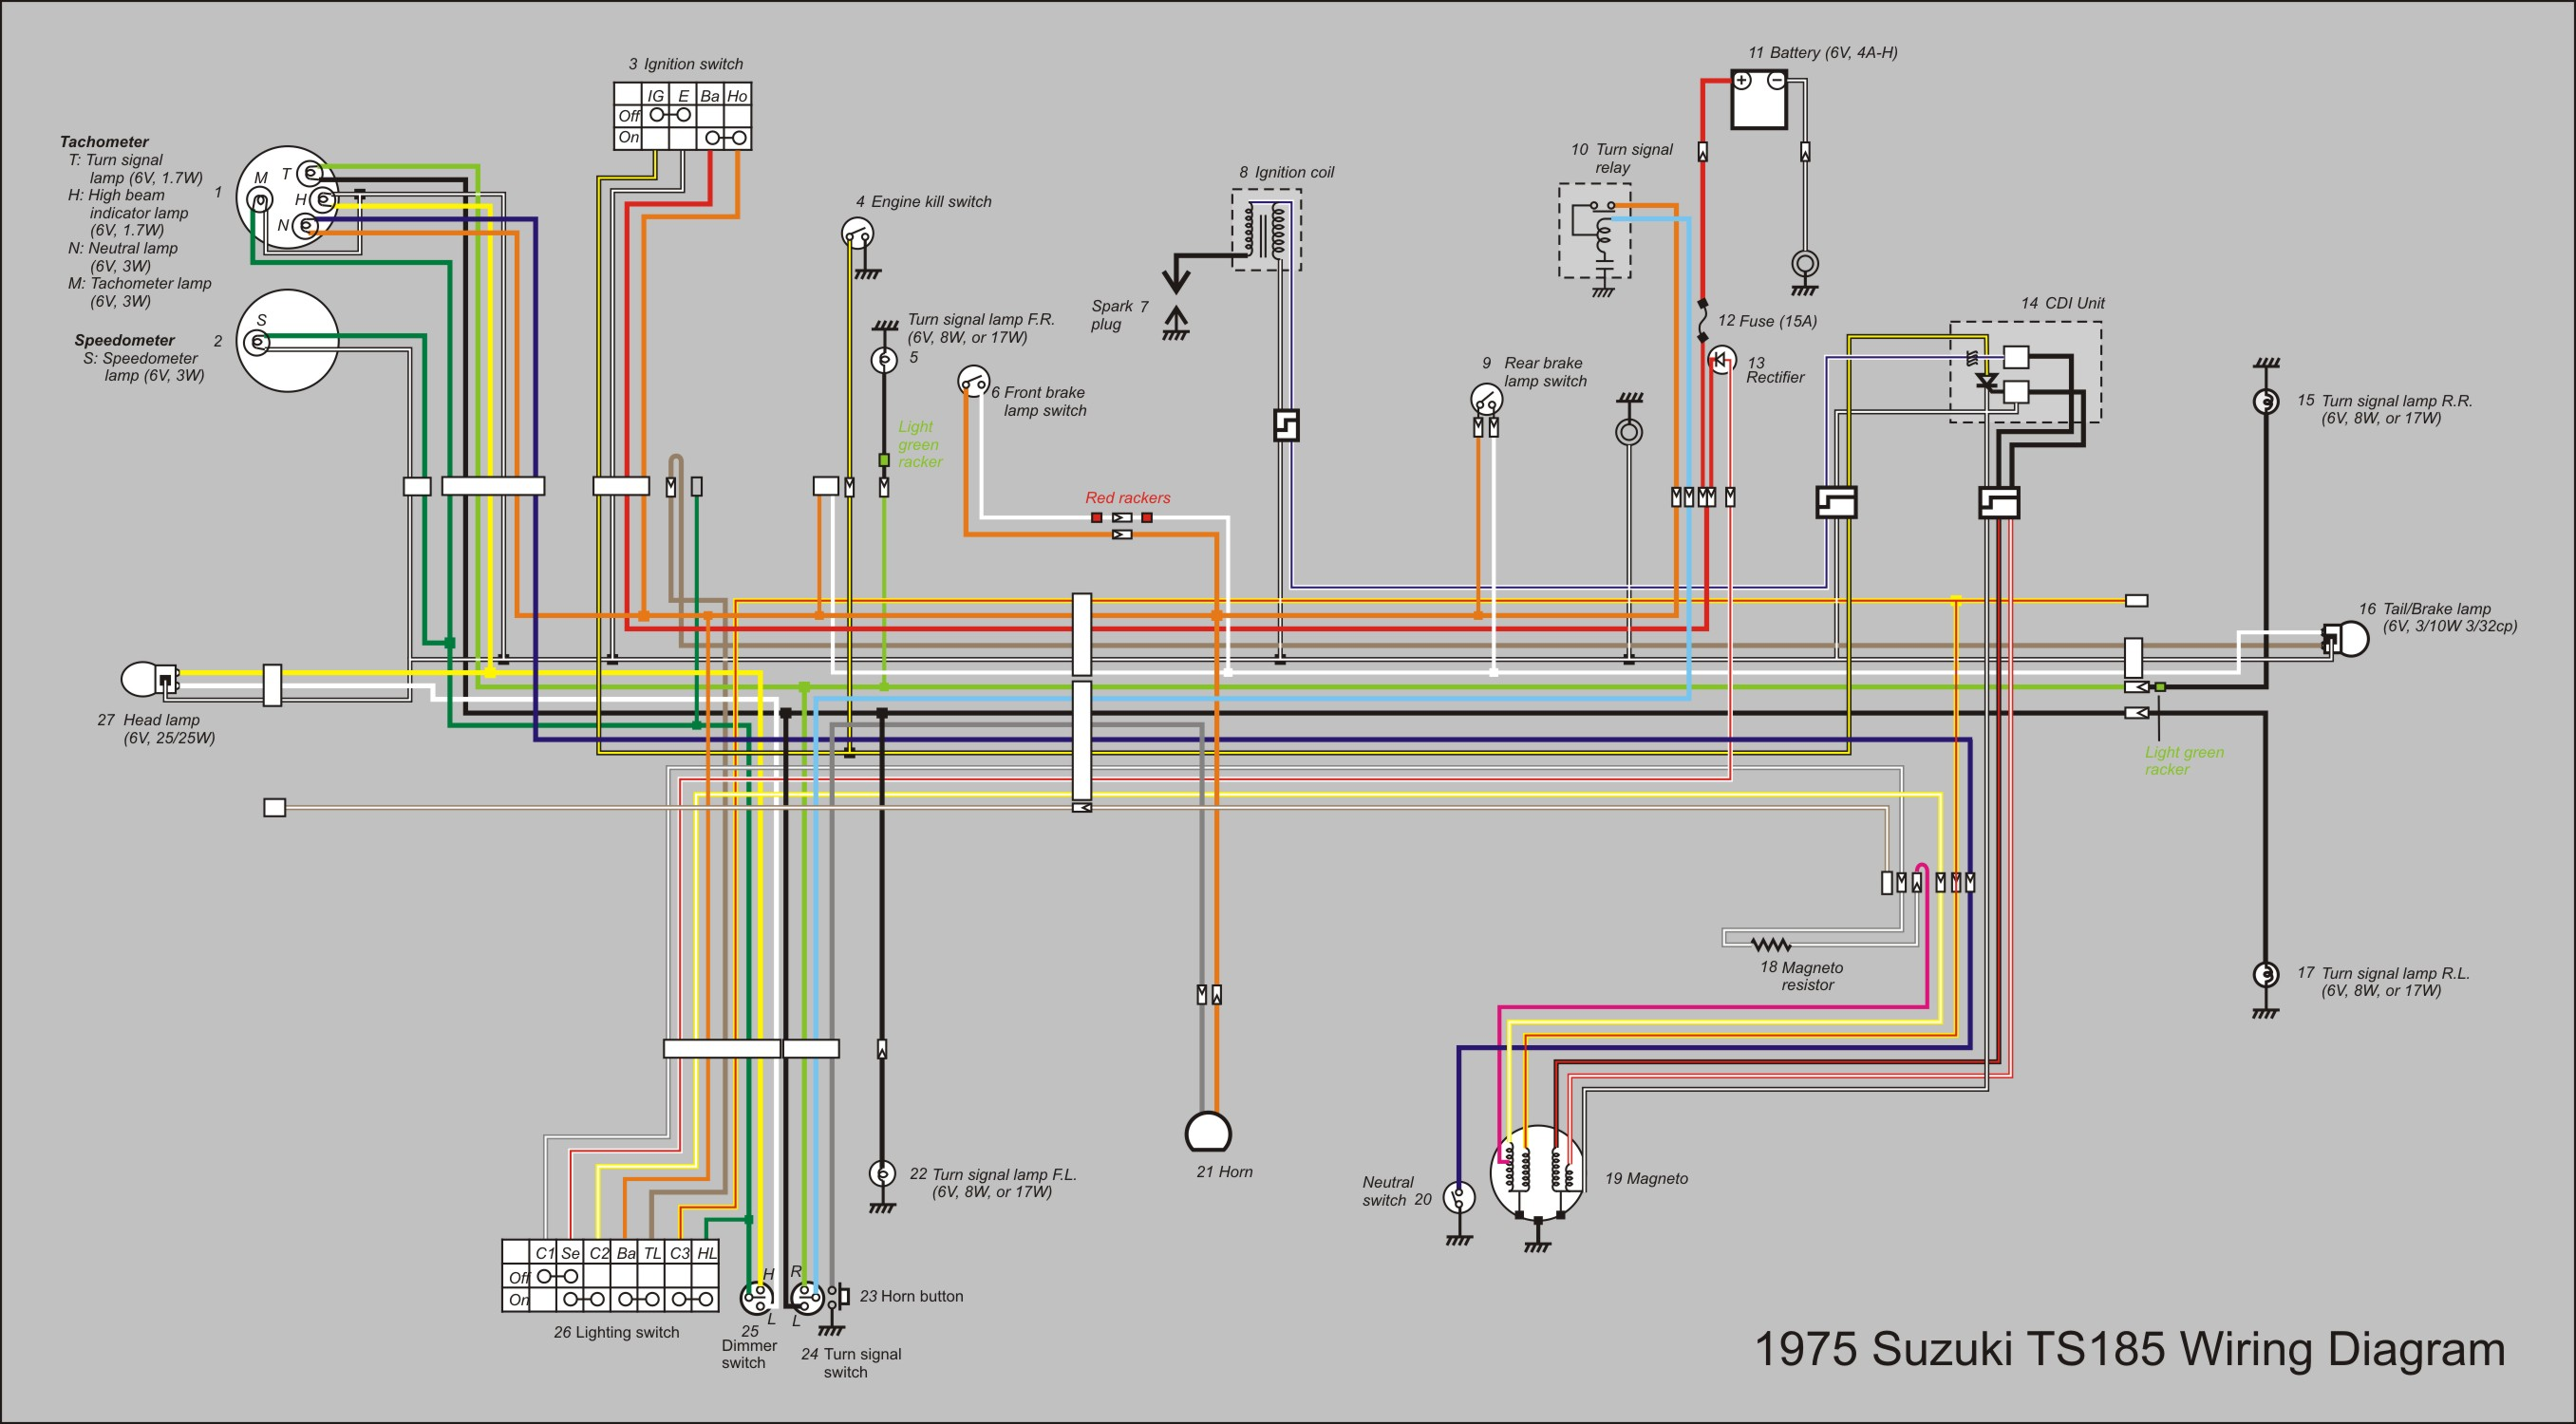 TS185_Wiring_Diagram_new file ts185 wiring diagram new jpg wikimedia commons 1987 suzuki 250 quadrunner wiring diagram at readyjetset.co